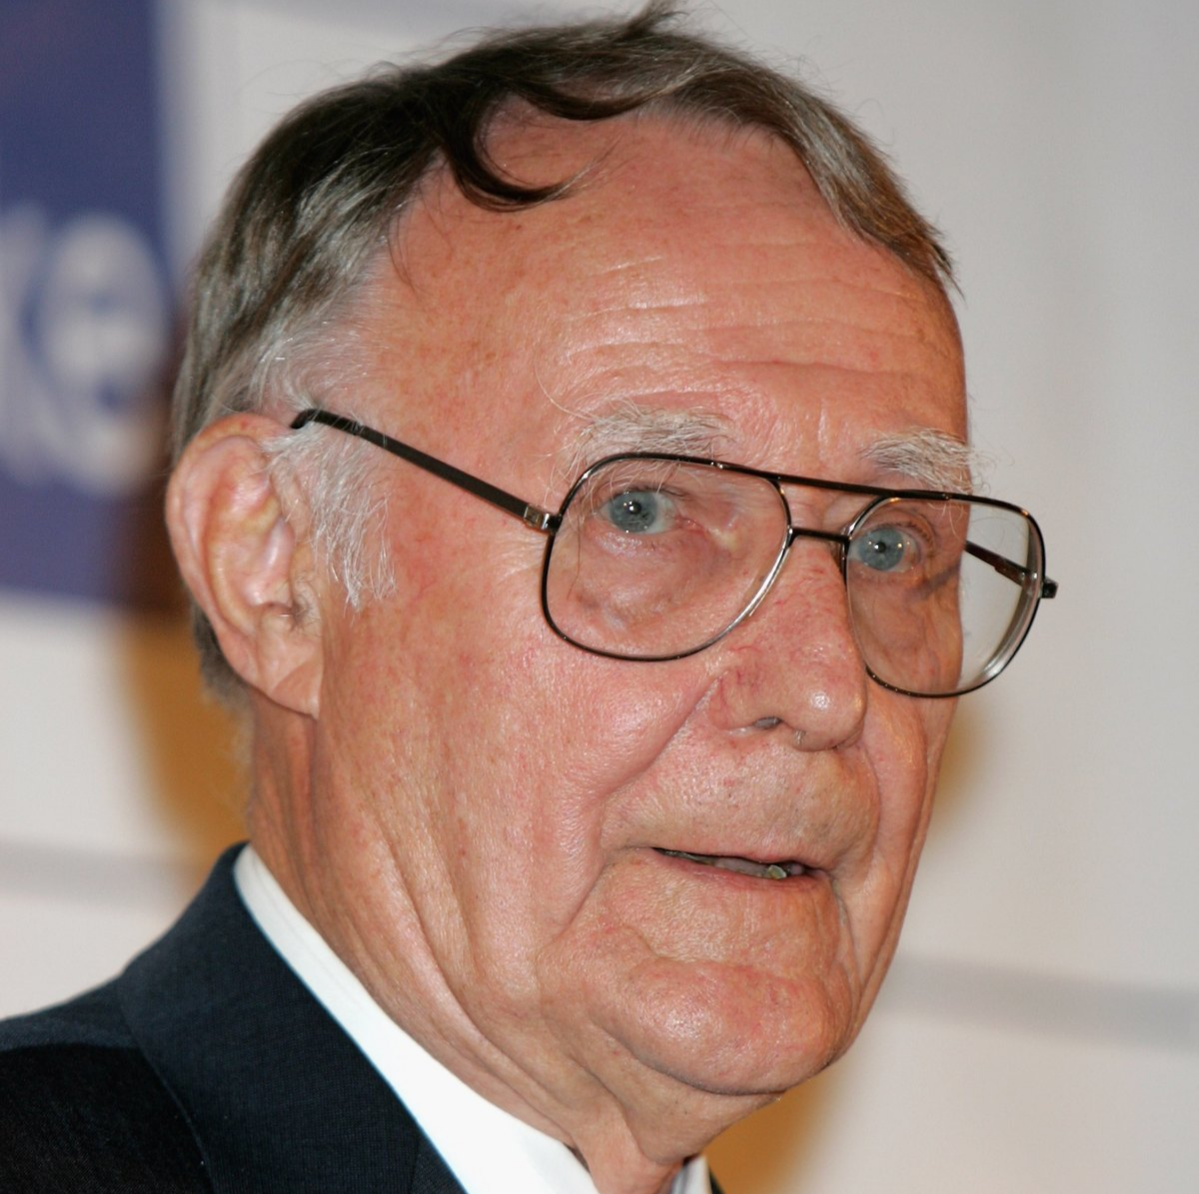 ngvar Kamprad, founder of IKEA, is seen after being presented the Lifetime Achievment Award by Princess Victoria of Sweden at the Swedish Chamber of Commerce Centenery Celebrations on May 12, 2006 in London, England.